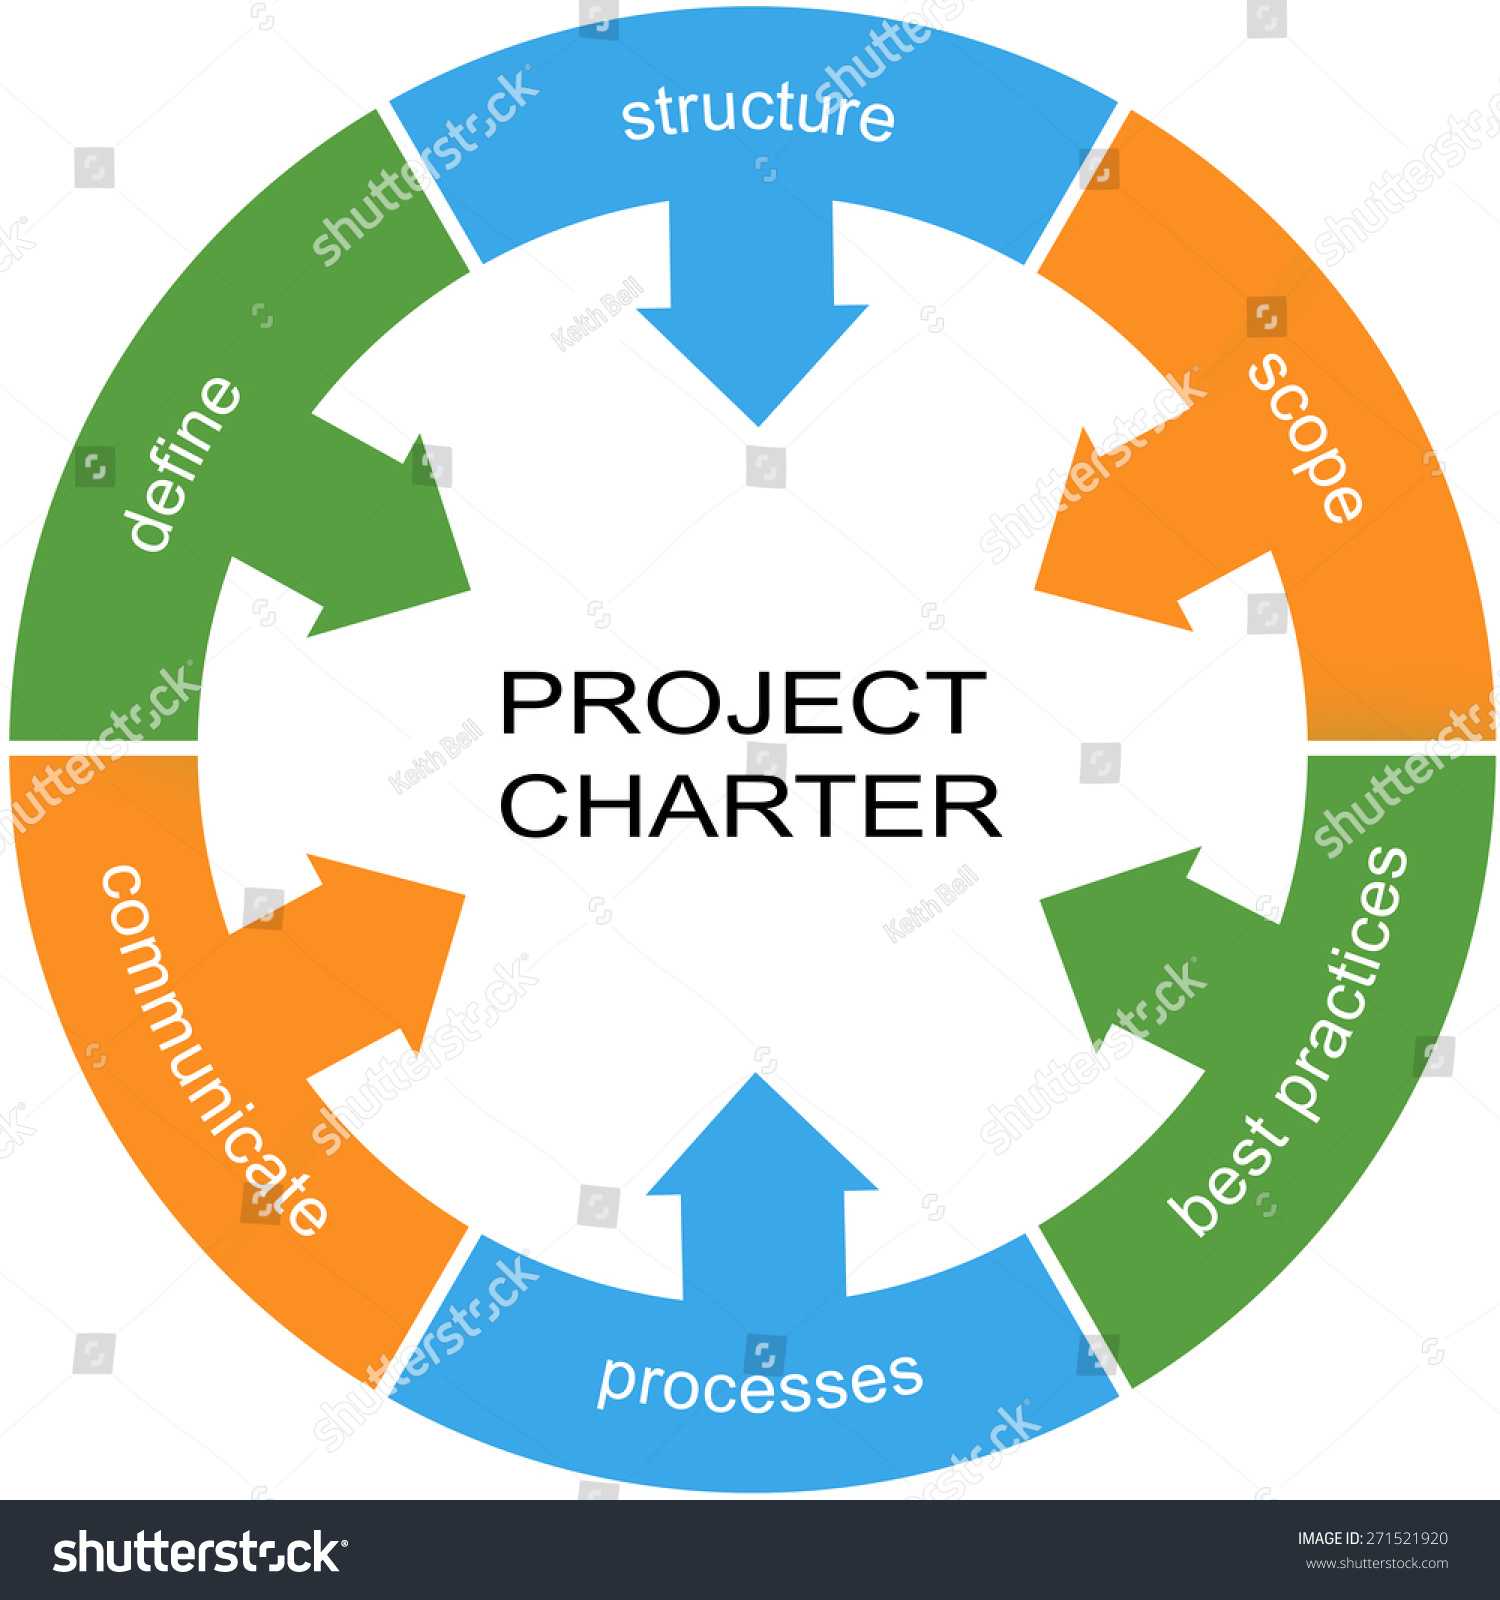 project scope and charter The project charter should include the needs, scope, justification, and resource commitment as well as the project's sponsor(s) decision to proceed or not to proceed with the project it is created during the initiating phase of the project.